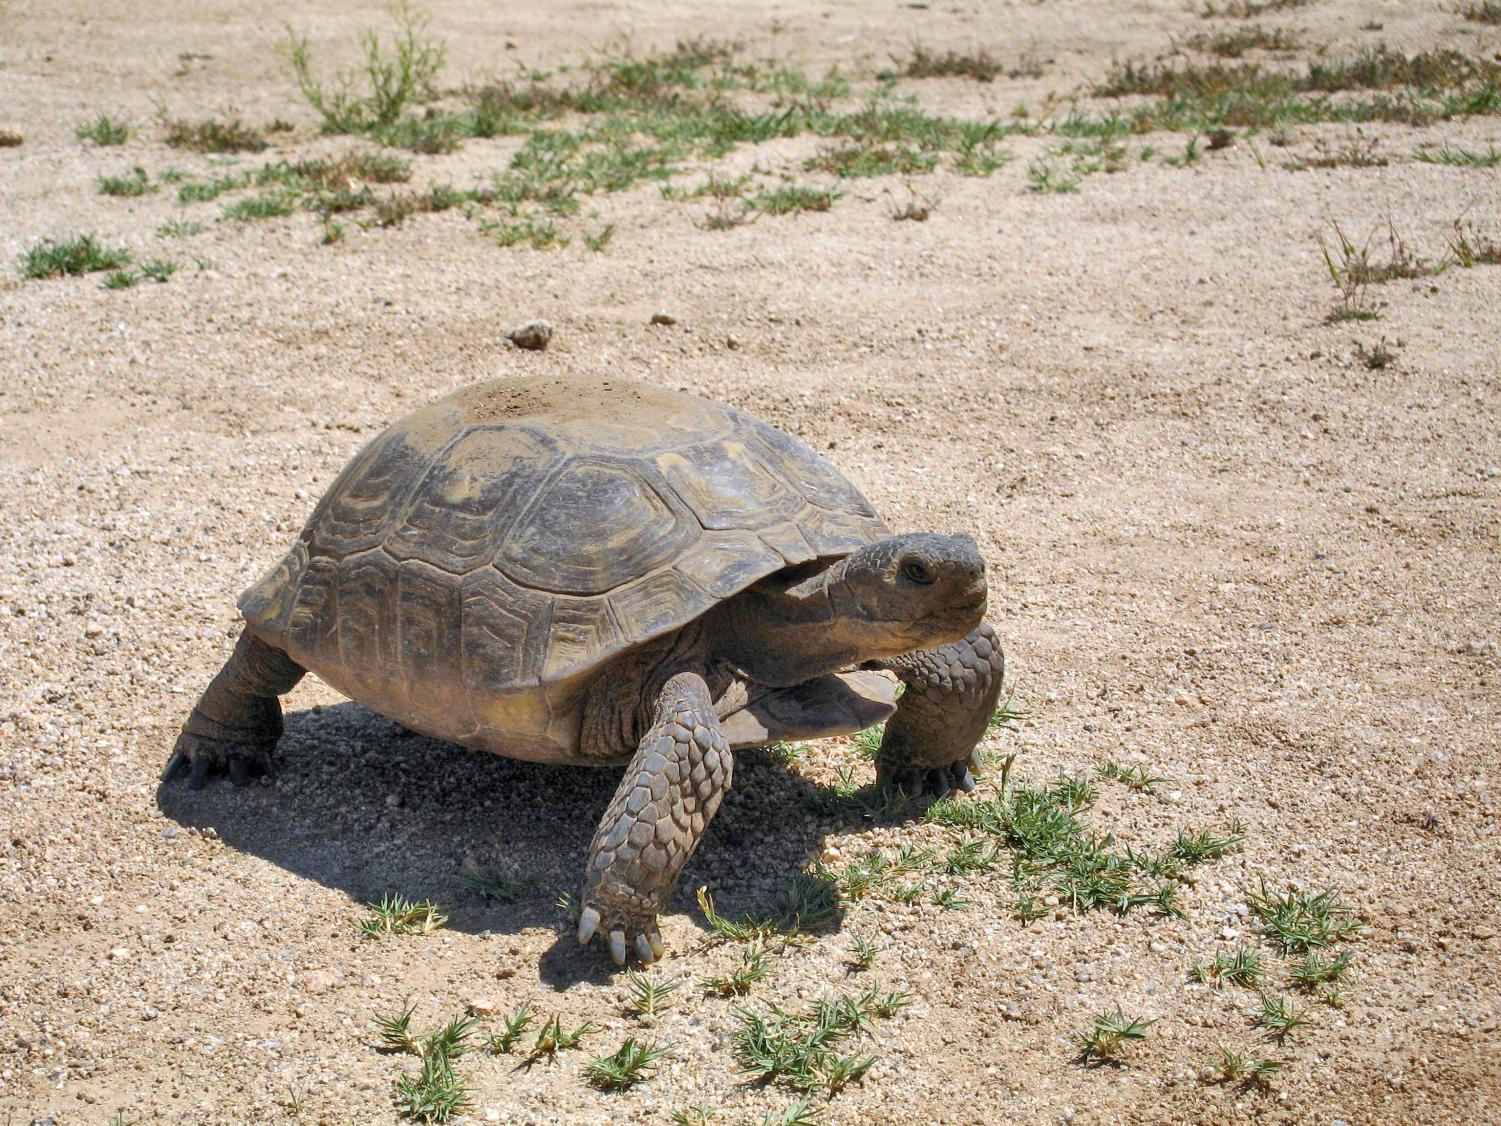 Kennedie Starr writes that fragile desert tortoises should not pay the price of population growth. (Courtesy Wikimedia Commons)